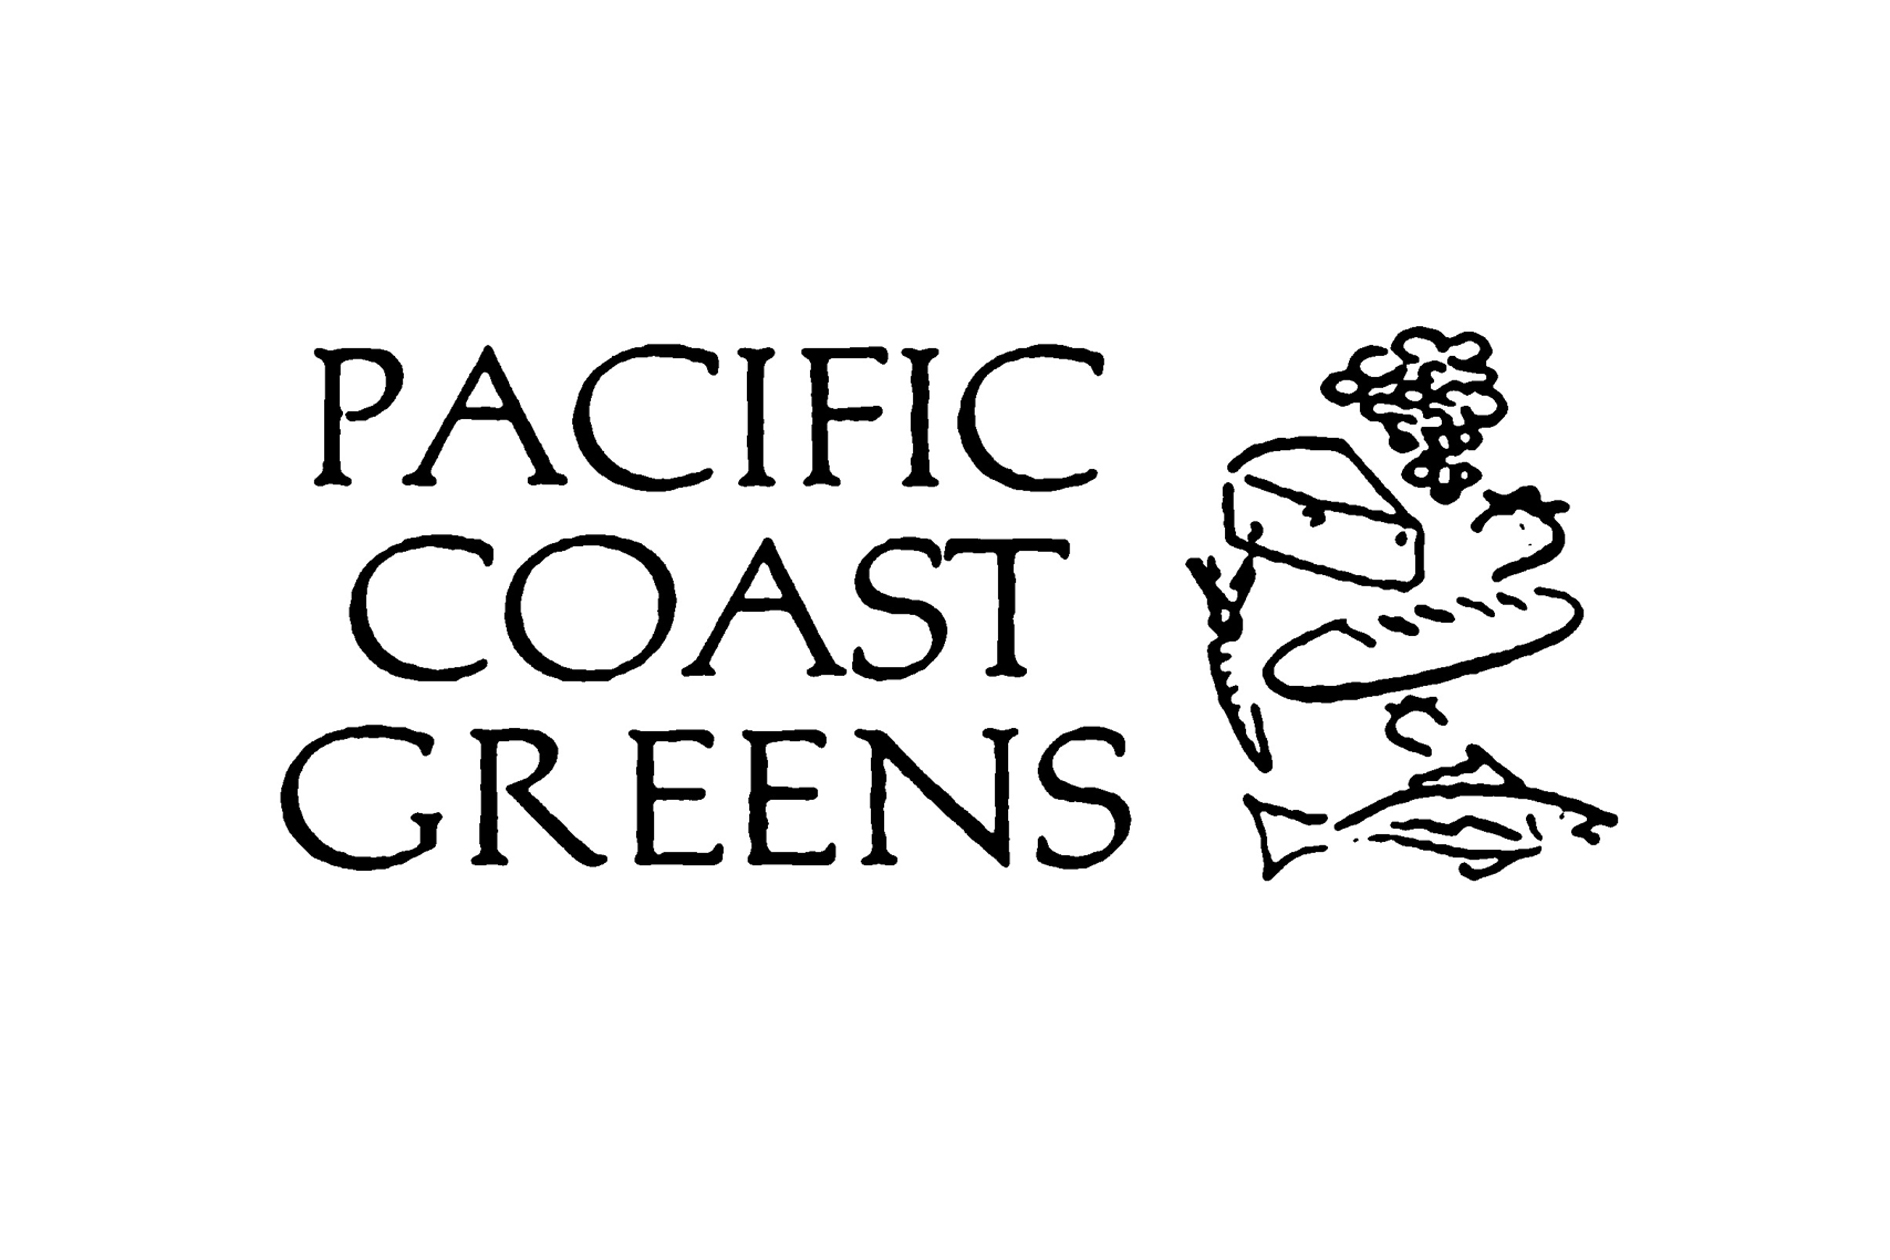 Nuna Pacific Coast Green+.jpg